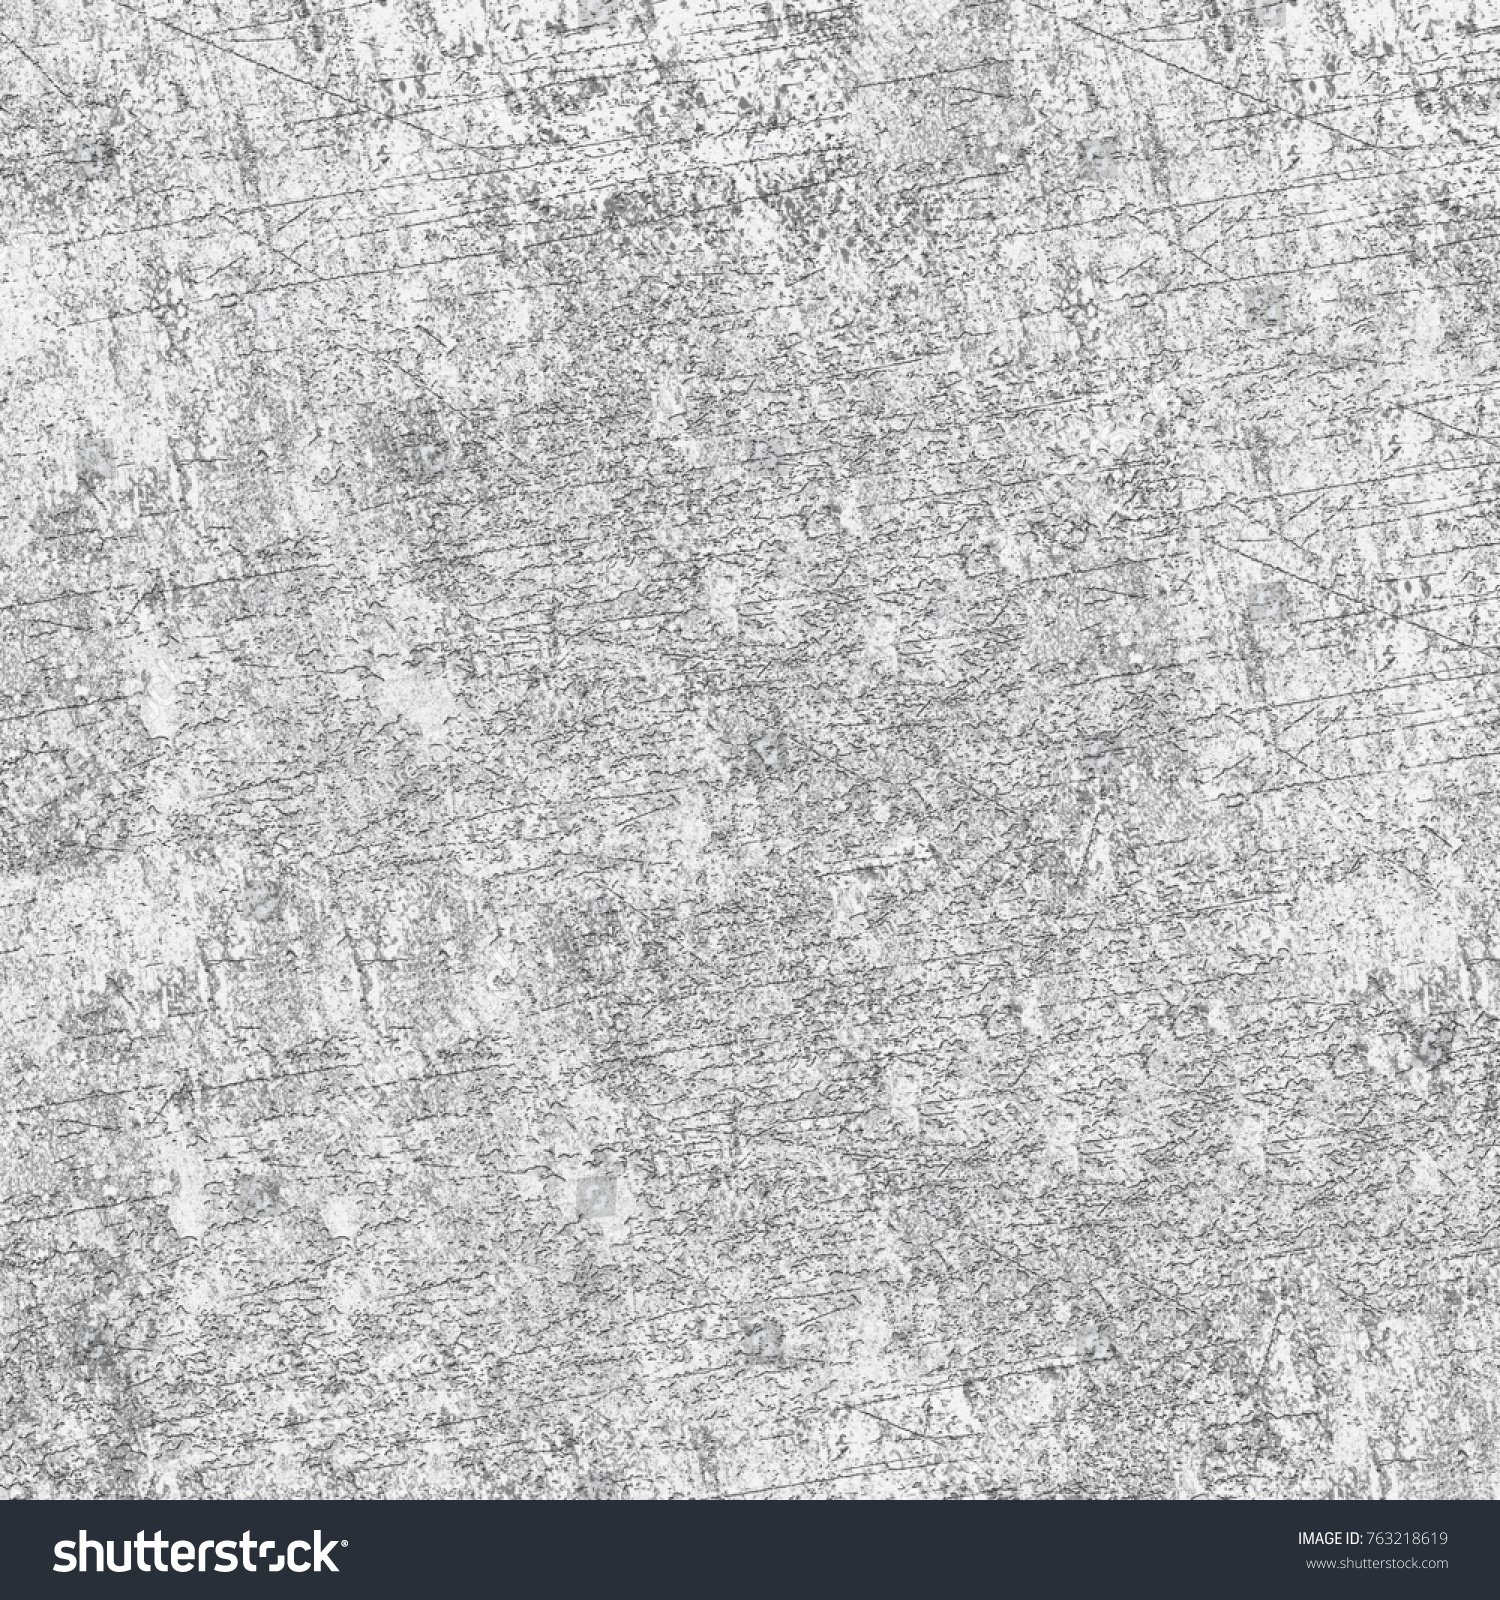 Grunge Background Gray Monochrome Stock Illustration 763218619  Shutterstock